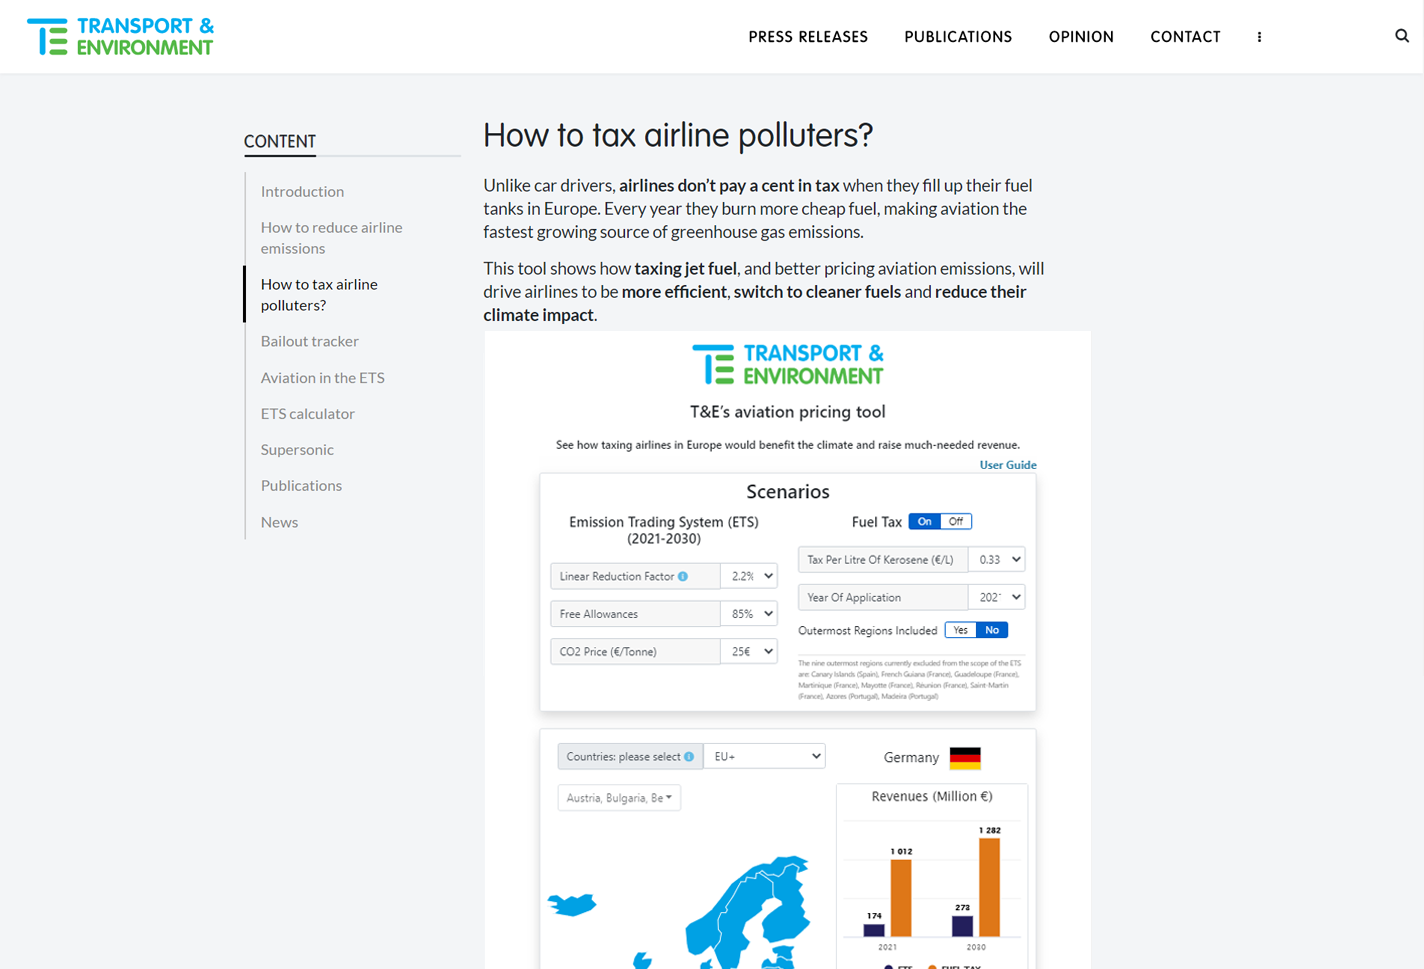 T&E's Aviation Pricing Tool Main Page Inscope